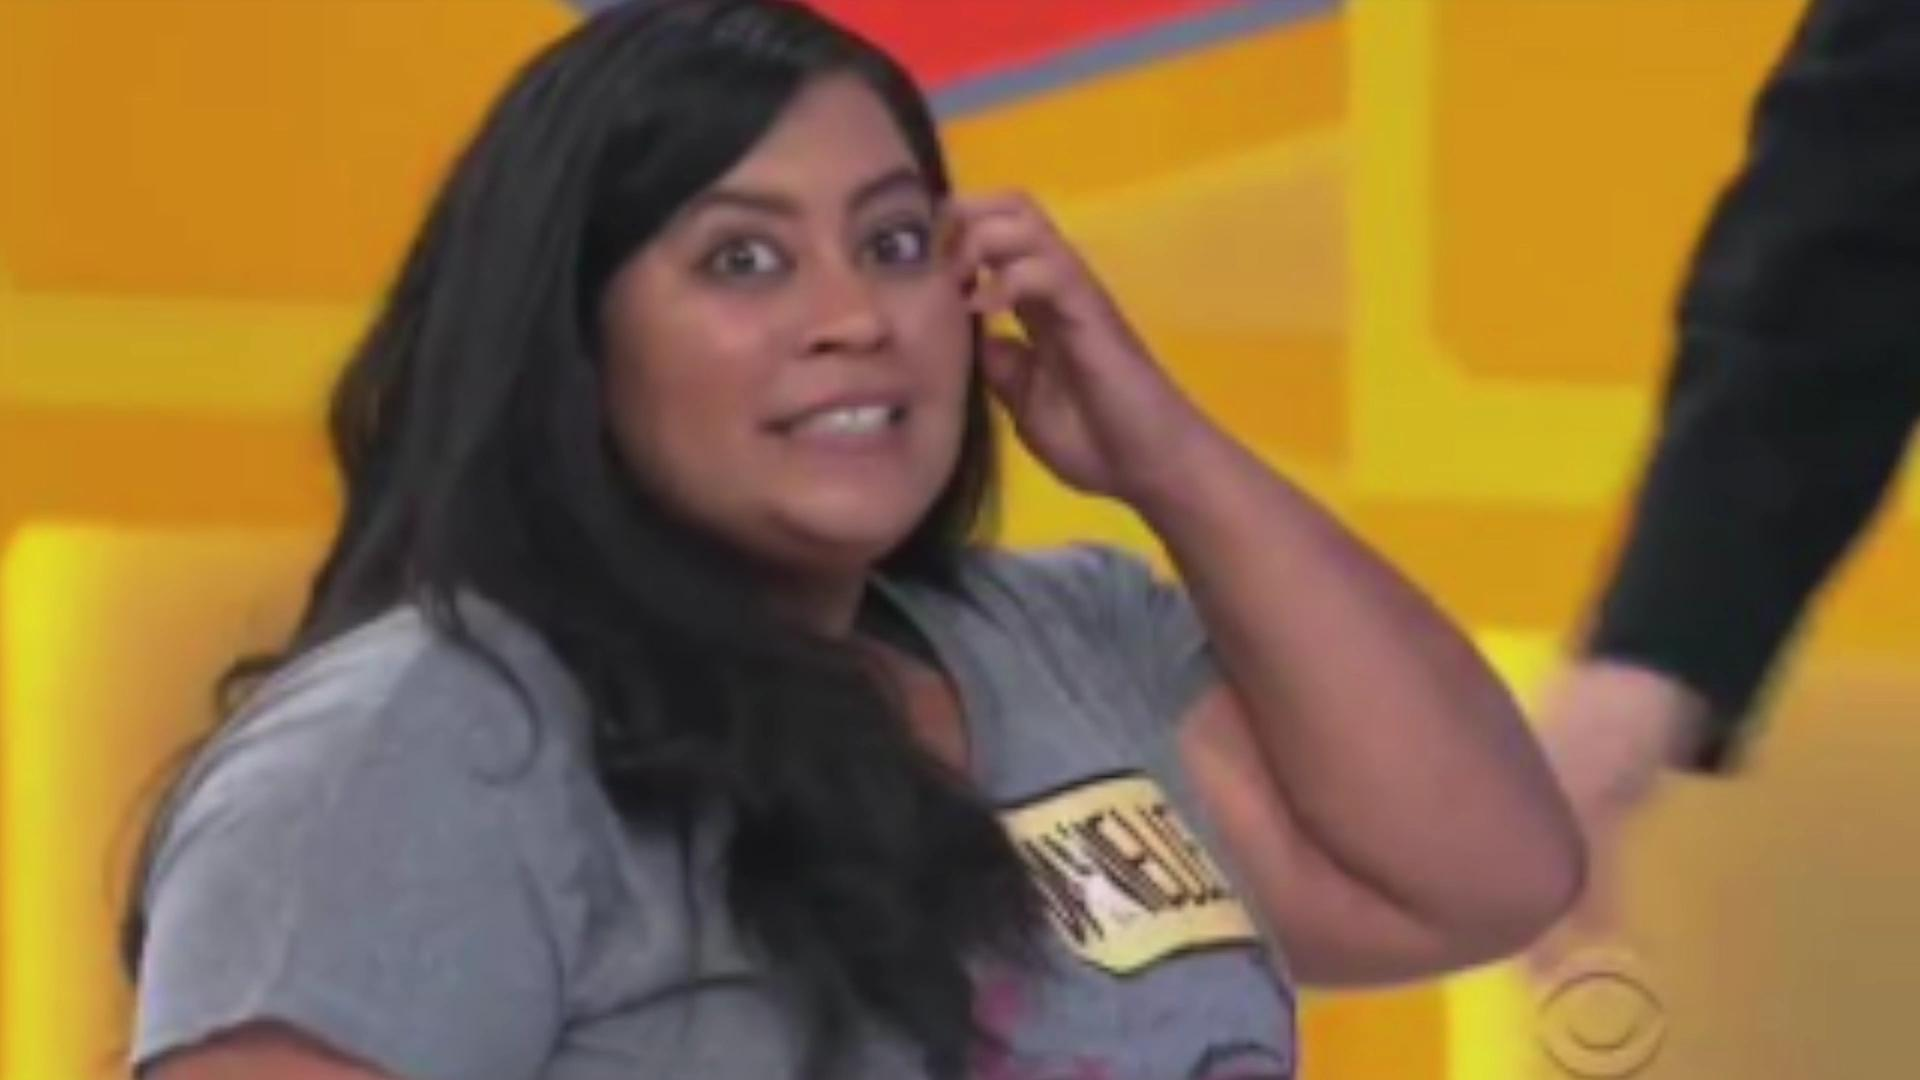 The wheelchair-bound woman who won a treadmill on ThePrice is Right says she's going to keep her prize. Keri Lumm has the story.